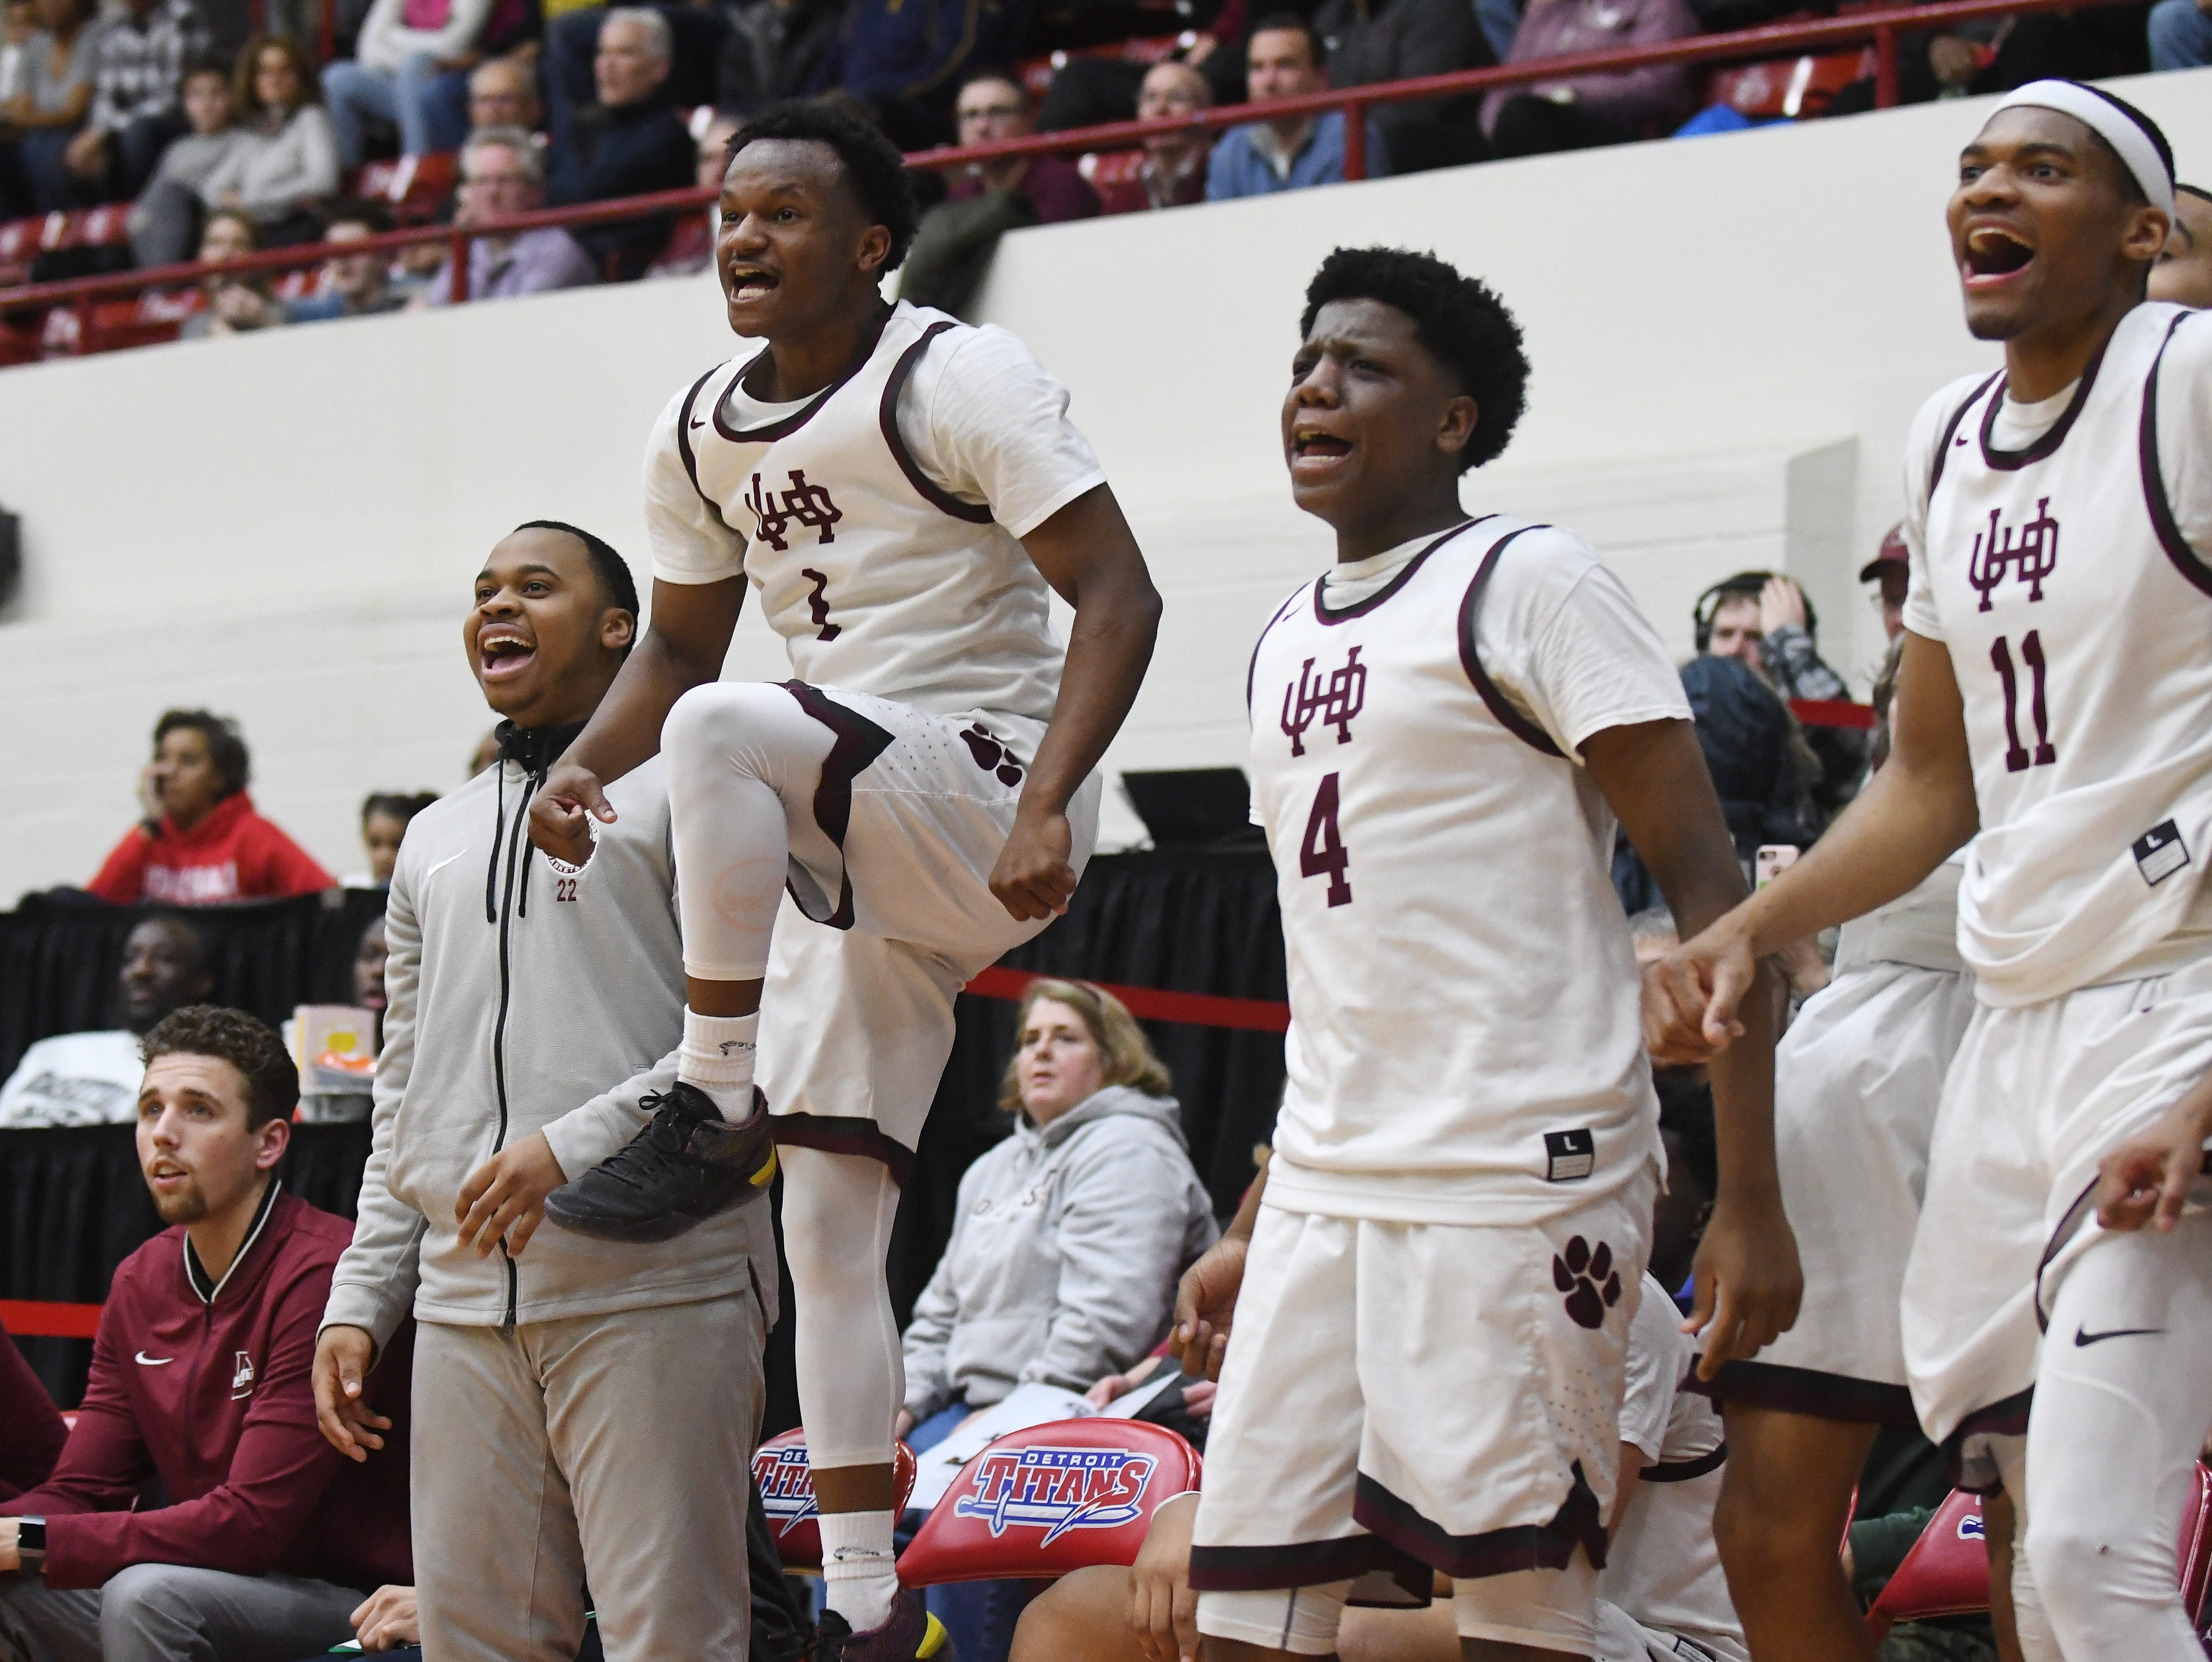 U of D Jesuit's bench erupts including Julian Dozier, Isaiah Friday and Jalen Thomas as a basket is made with the second team late in the second half of the Operation Friendship championship game.